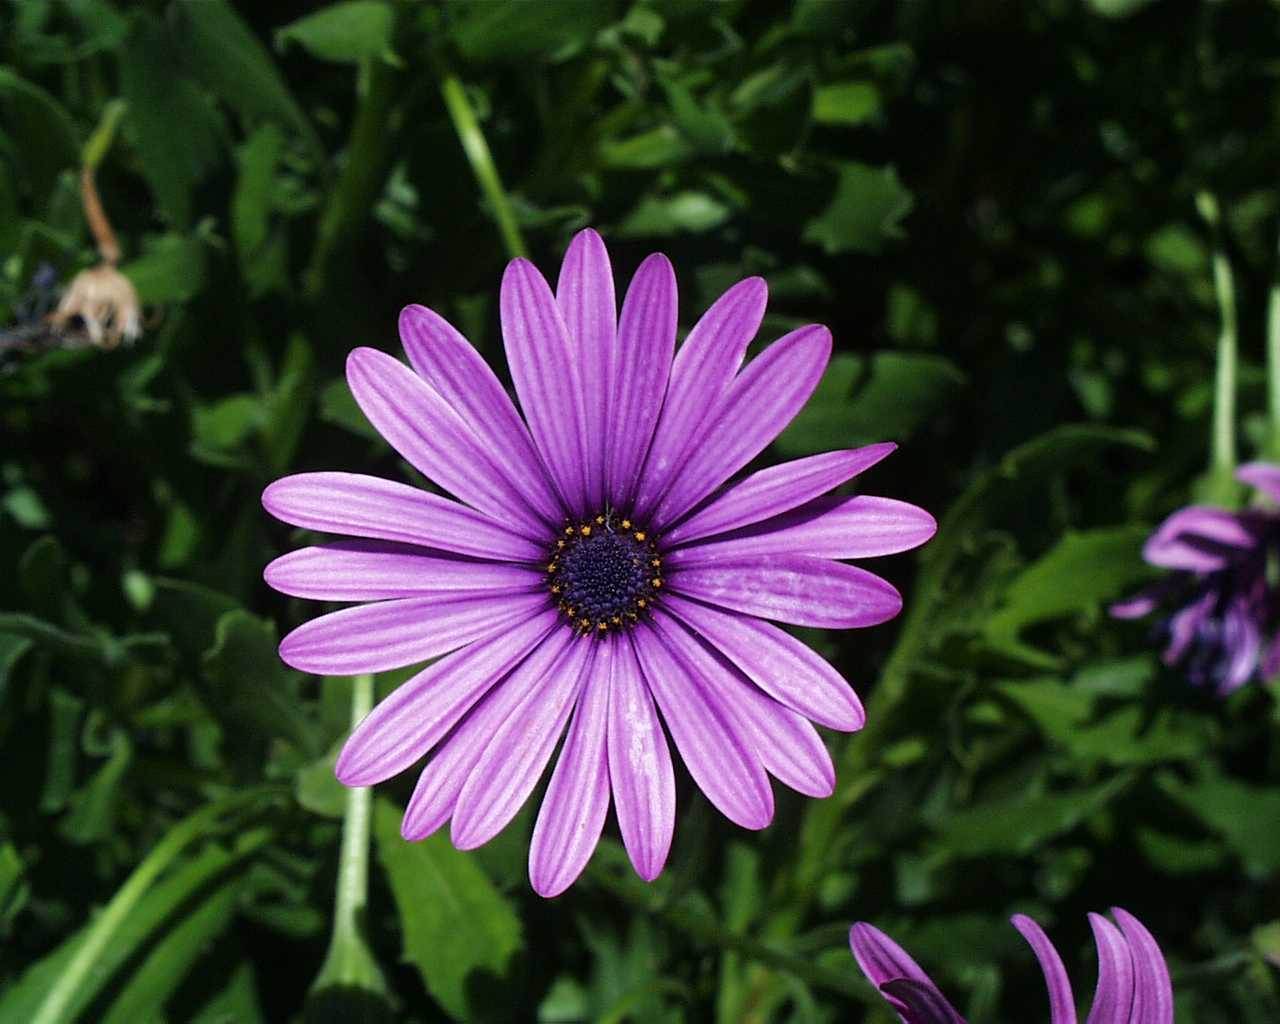 flowers for flower lovers.: Daisy flowers pictures.